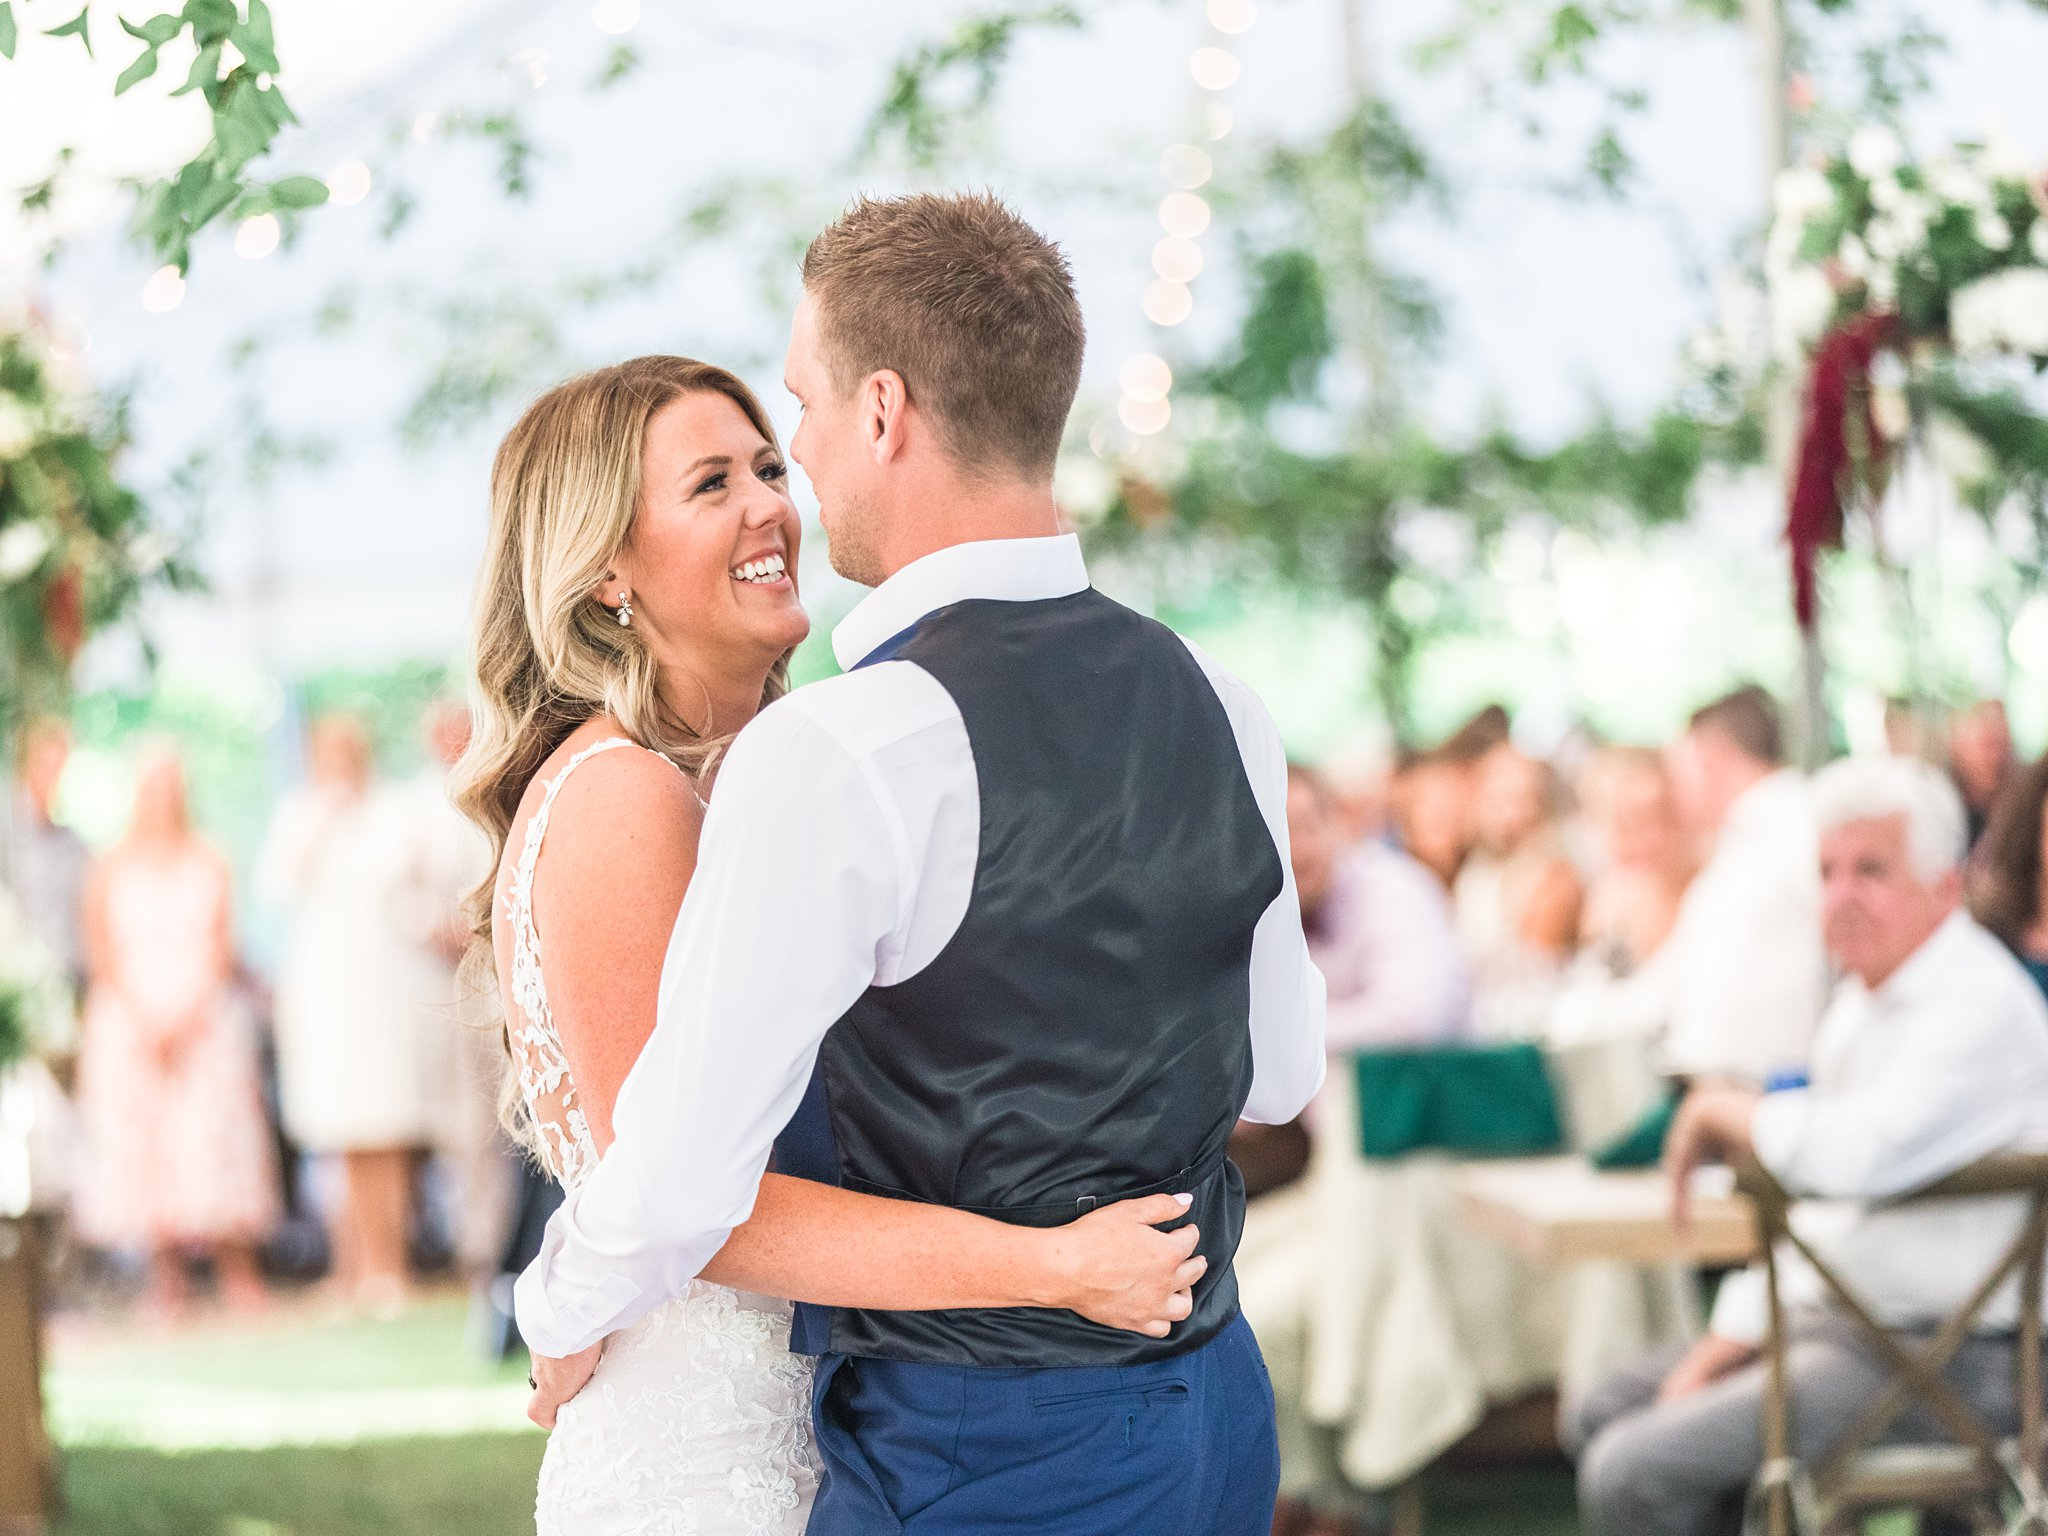 Bride and Groom's first dance, Private Estate Wedding Photos, Amy Pinder Photography